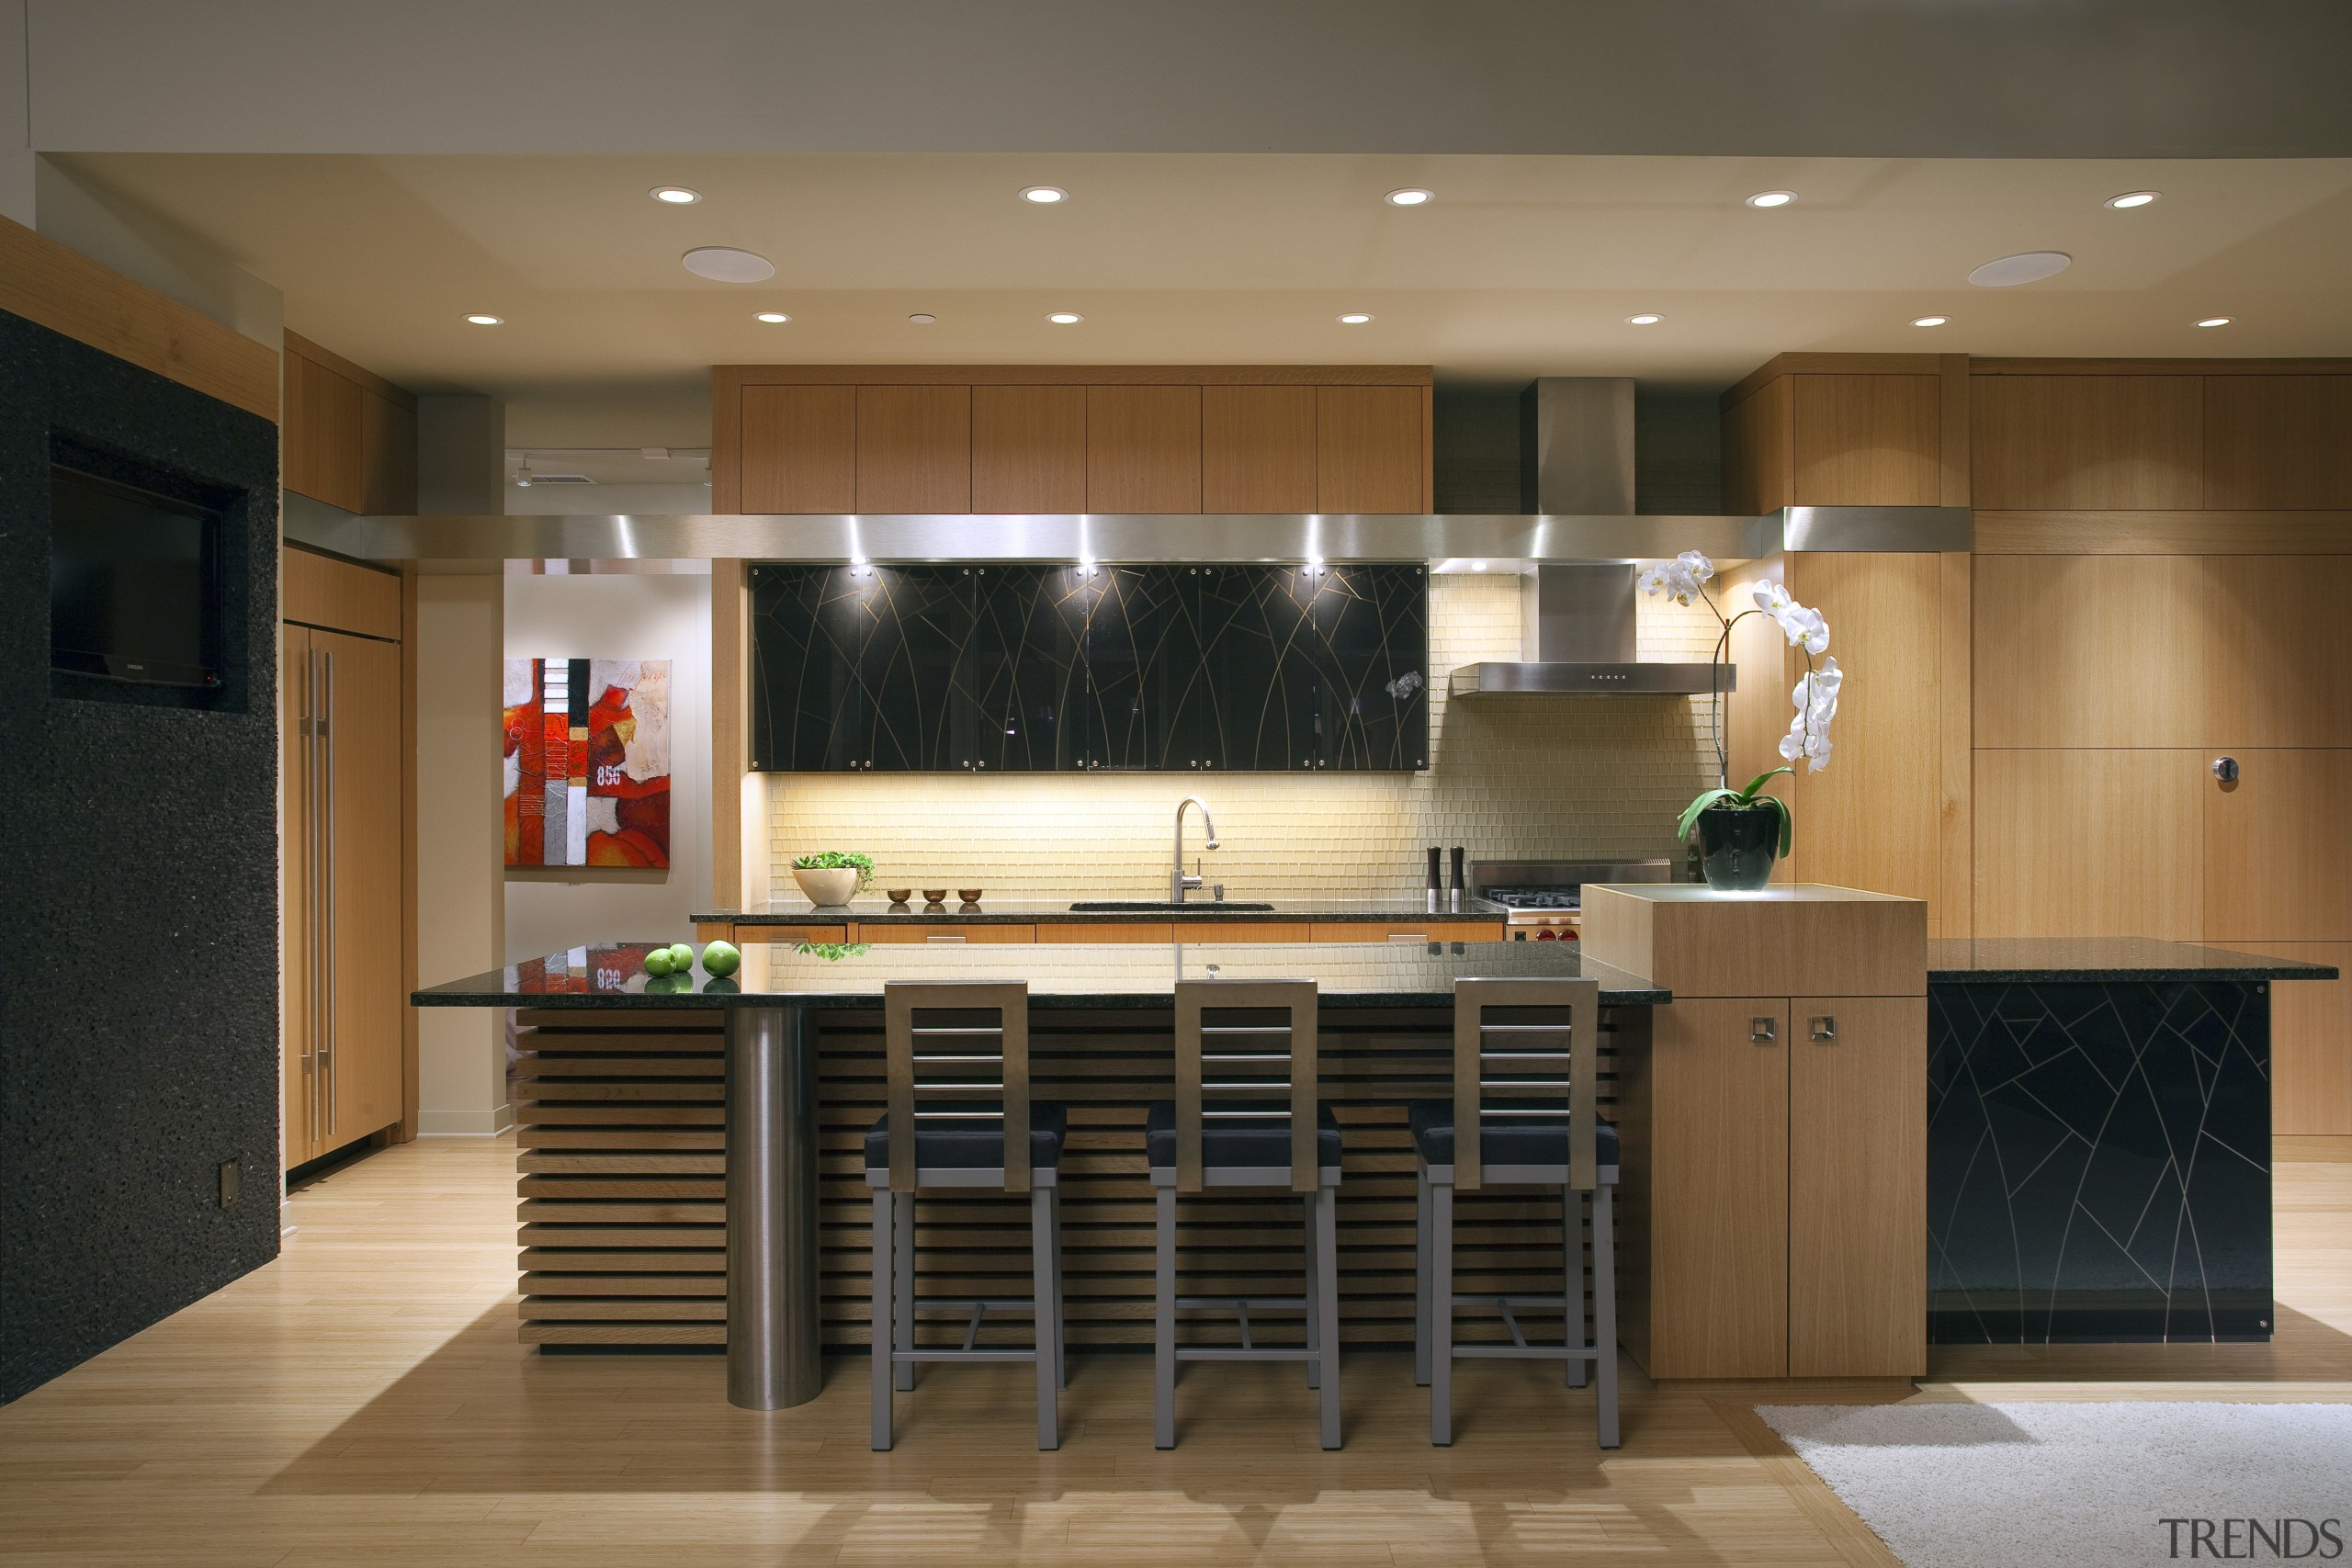 View of contemporary kitchen with wooden features and cabinetry, ceiling, countertop, floor, flooring, furniture, interior design, kitchen, lobby, room, table, brown